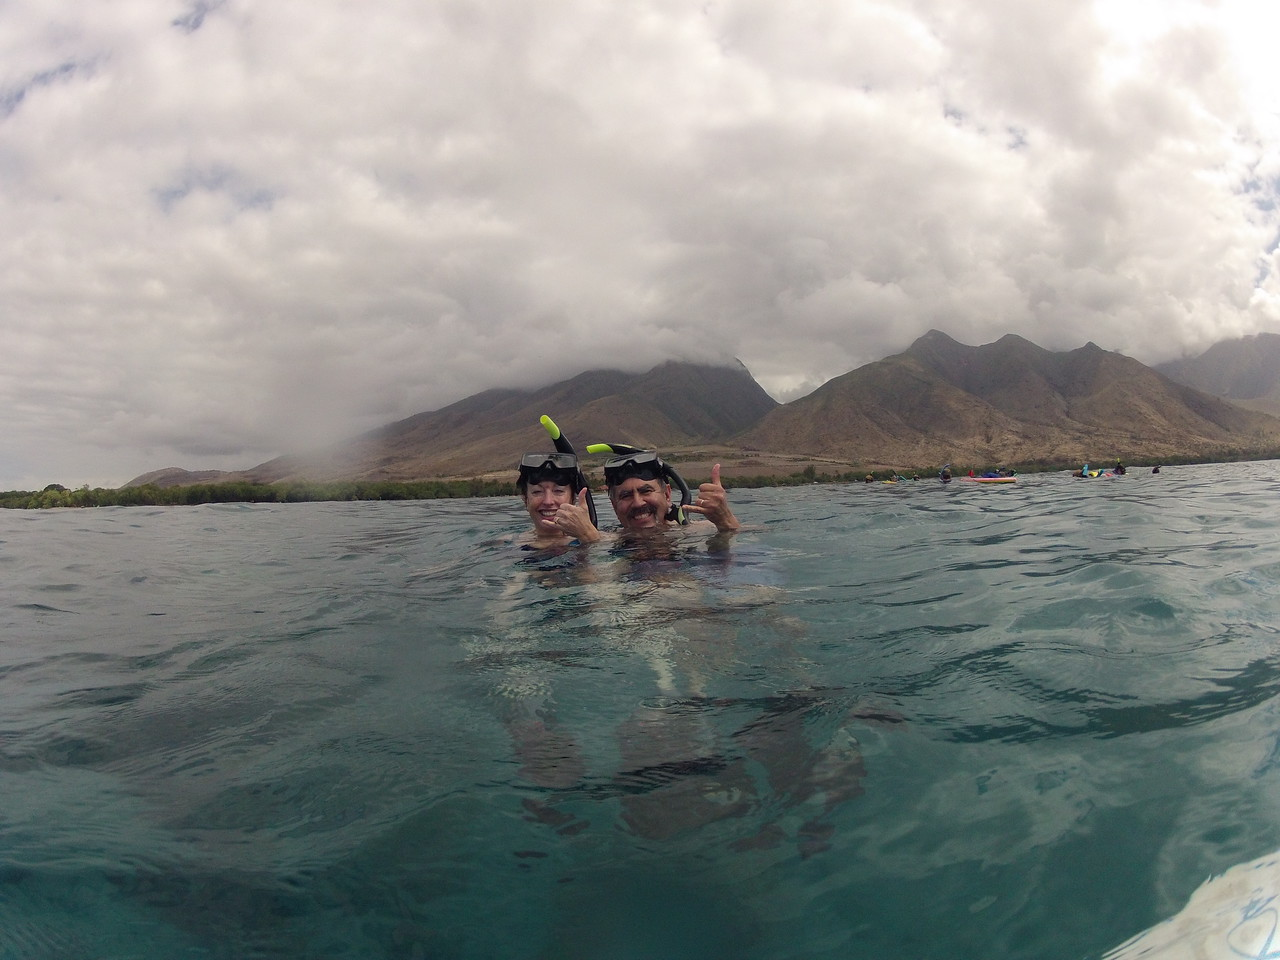 Hero GoPro camera in action at Turtle Point (Olowalu Beach).